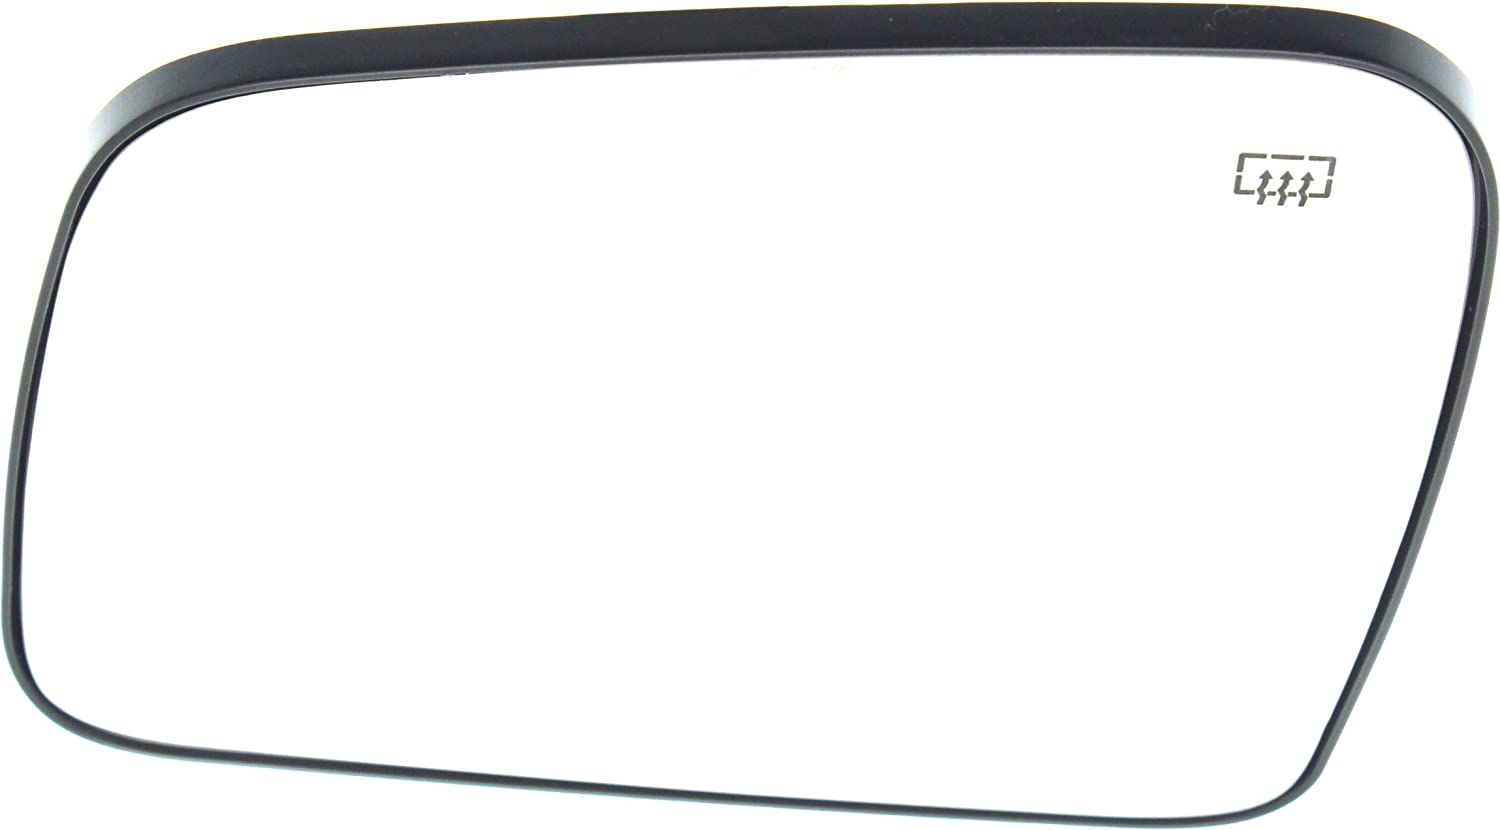 Kool Vue DG121GL Mirror Glass for Dodge Durango 11-18//Grand Cherokee 11-17 Left Side Heated With Backing Plate